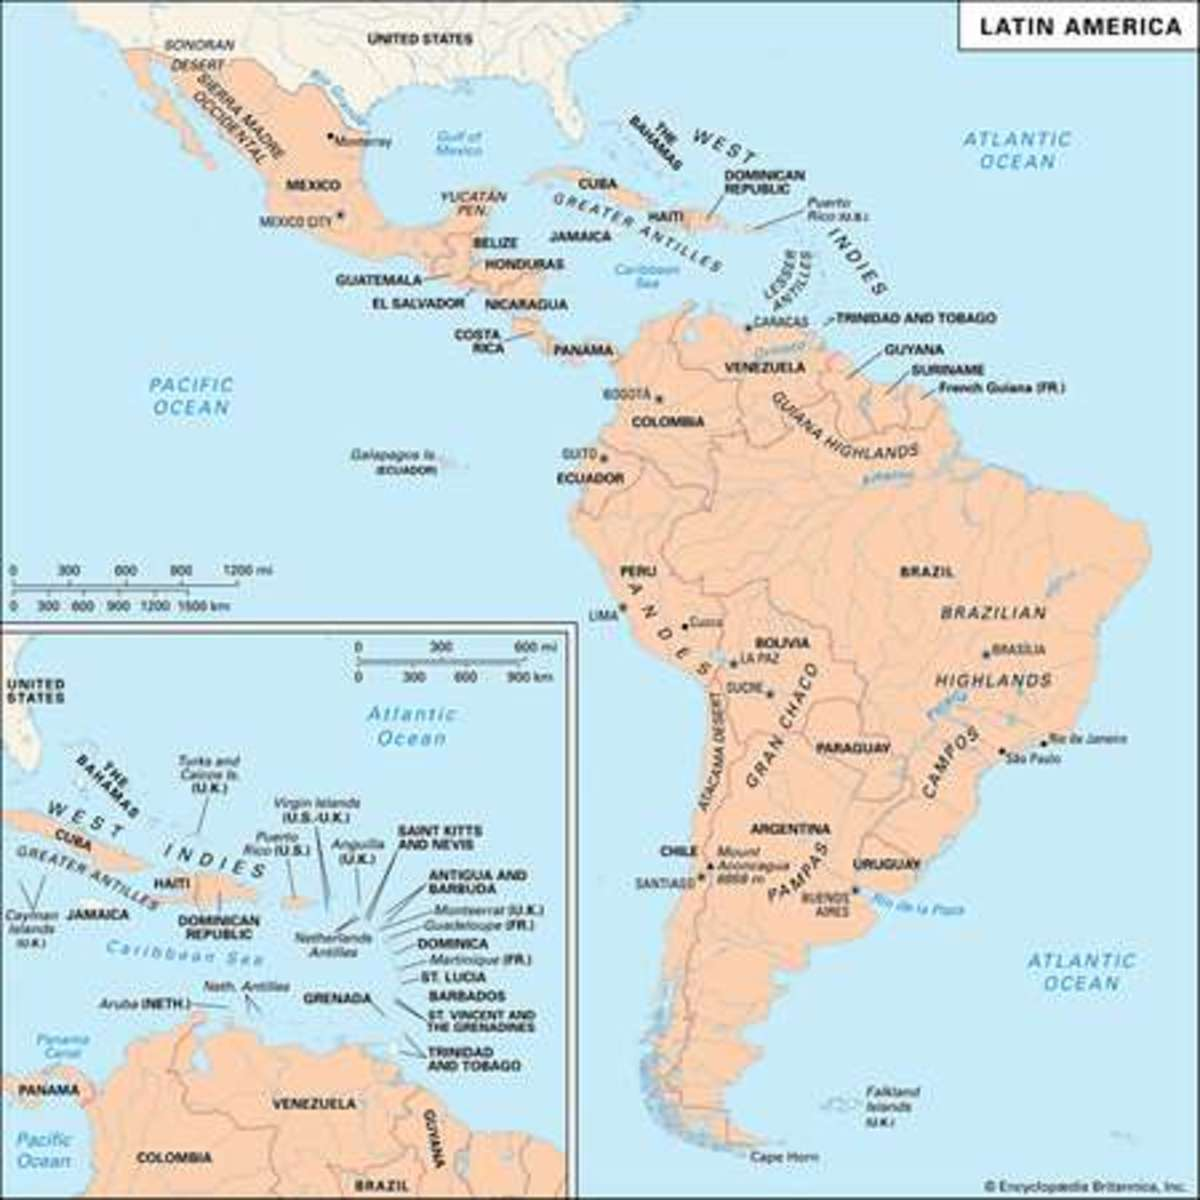 Peasant Rebellions in Latin American History: A Historiographical Analysis